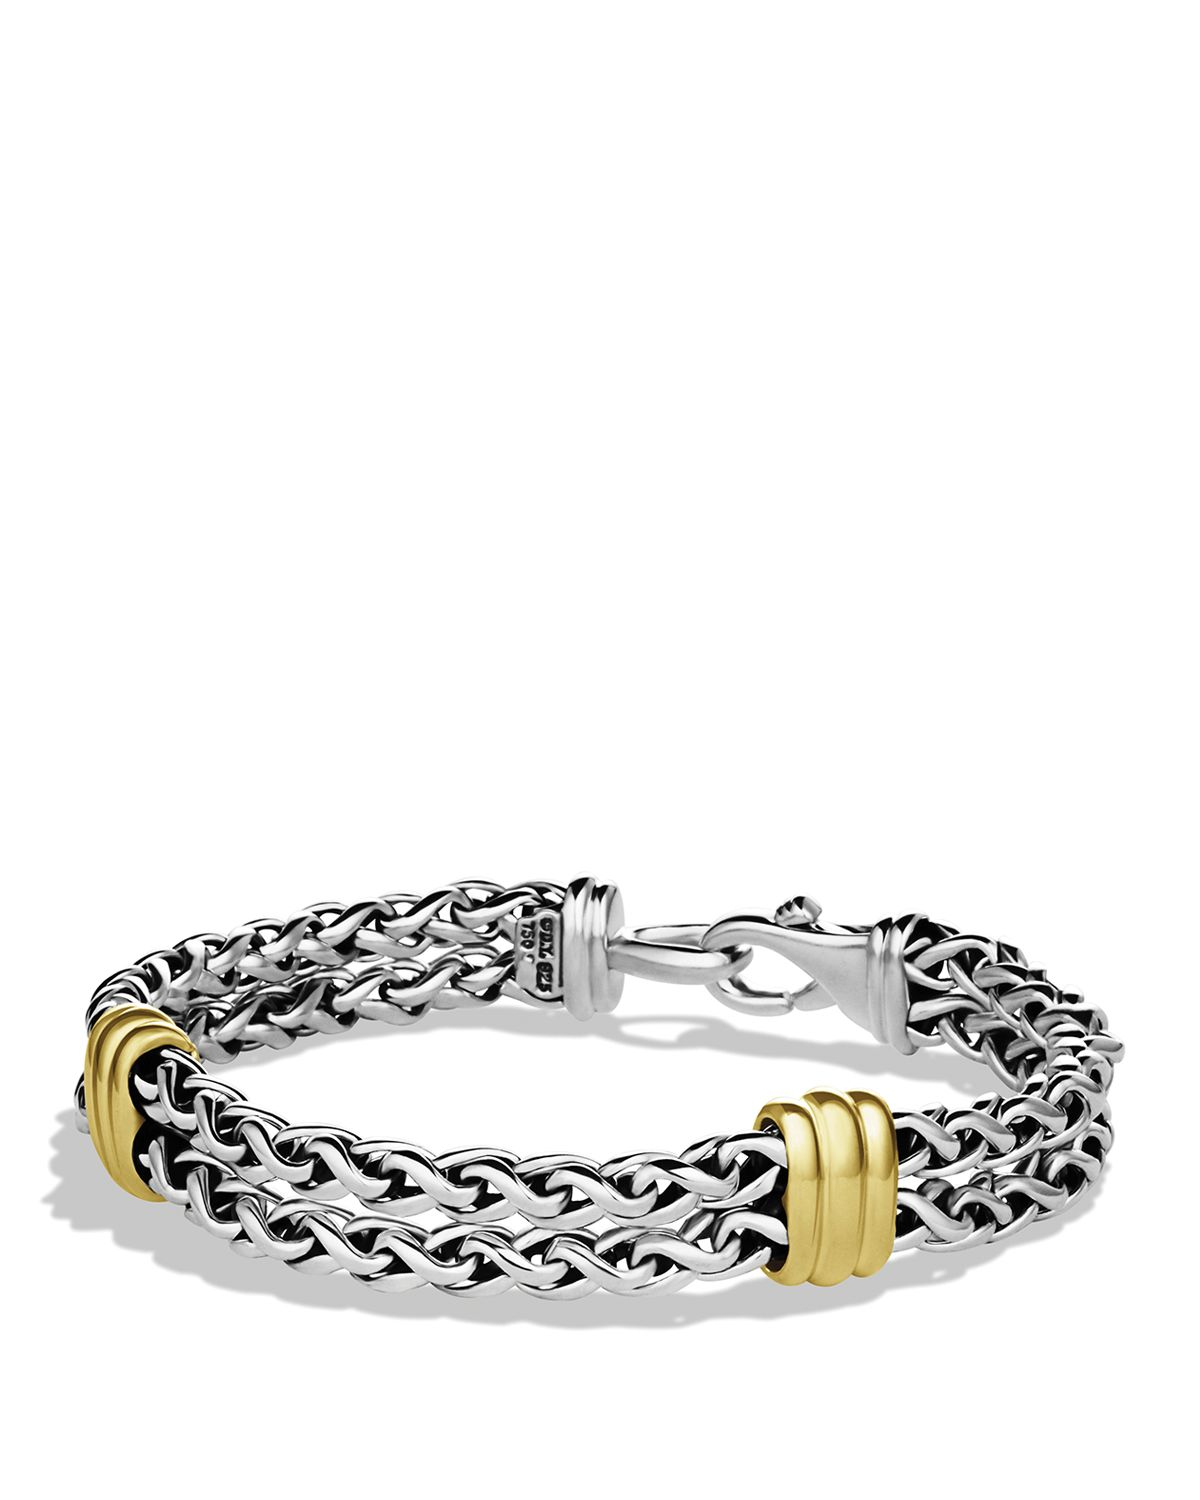 David Yurman Charm Bracelet: David Yurman Two-station Chain Bracelet With Gold